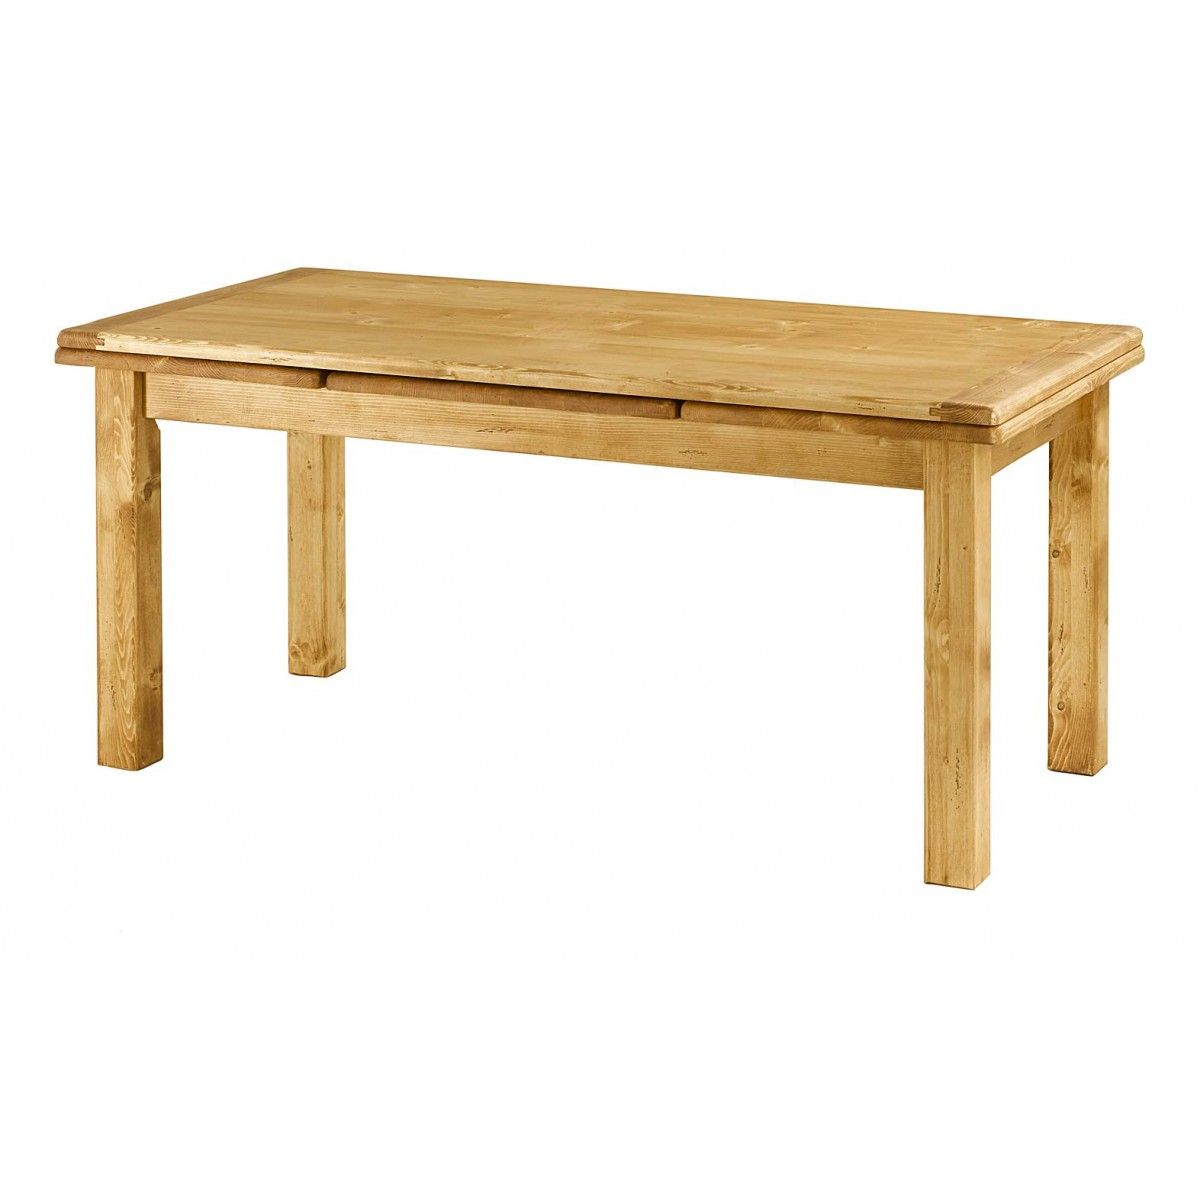 Table Sapin Massif 160 Cm Avec Allonges Oregon Table Pin